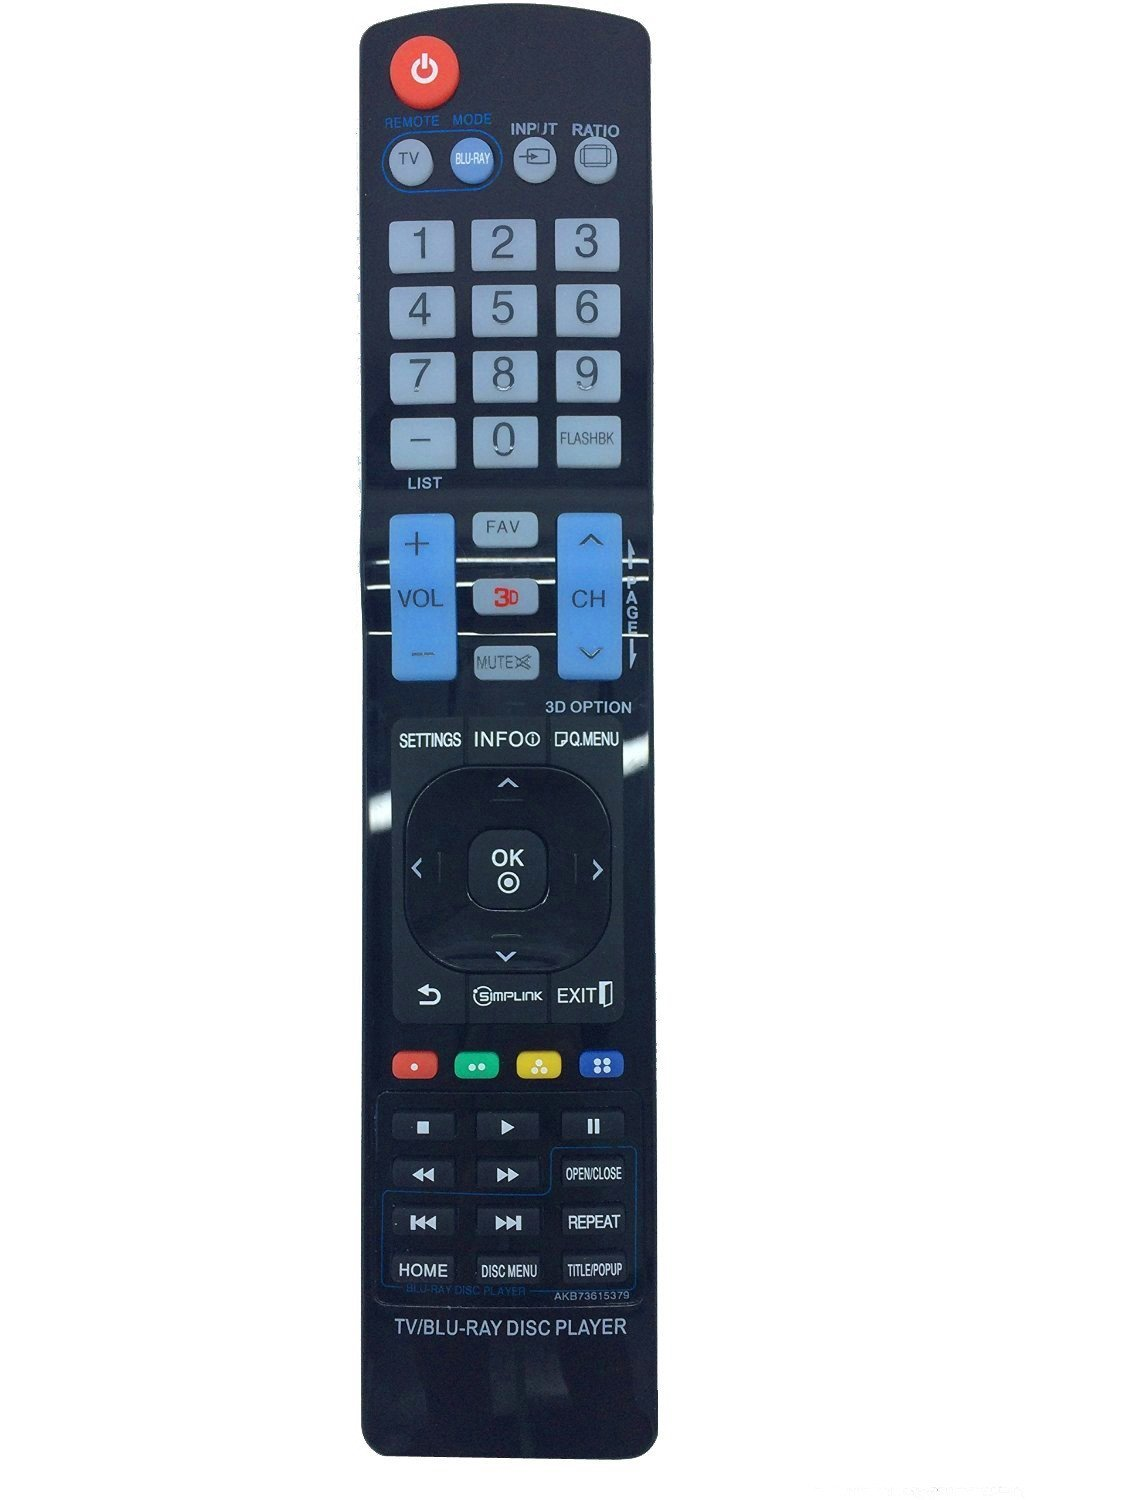 New AKB73615379 Universal BLU RAY Disc Player 3D TV Replaced Remote fit for Lg AKB72915206 AKB72915238 AKB72915252 AKB72914201 AKB72914207 AKB72914240 Akb73615363 And more